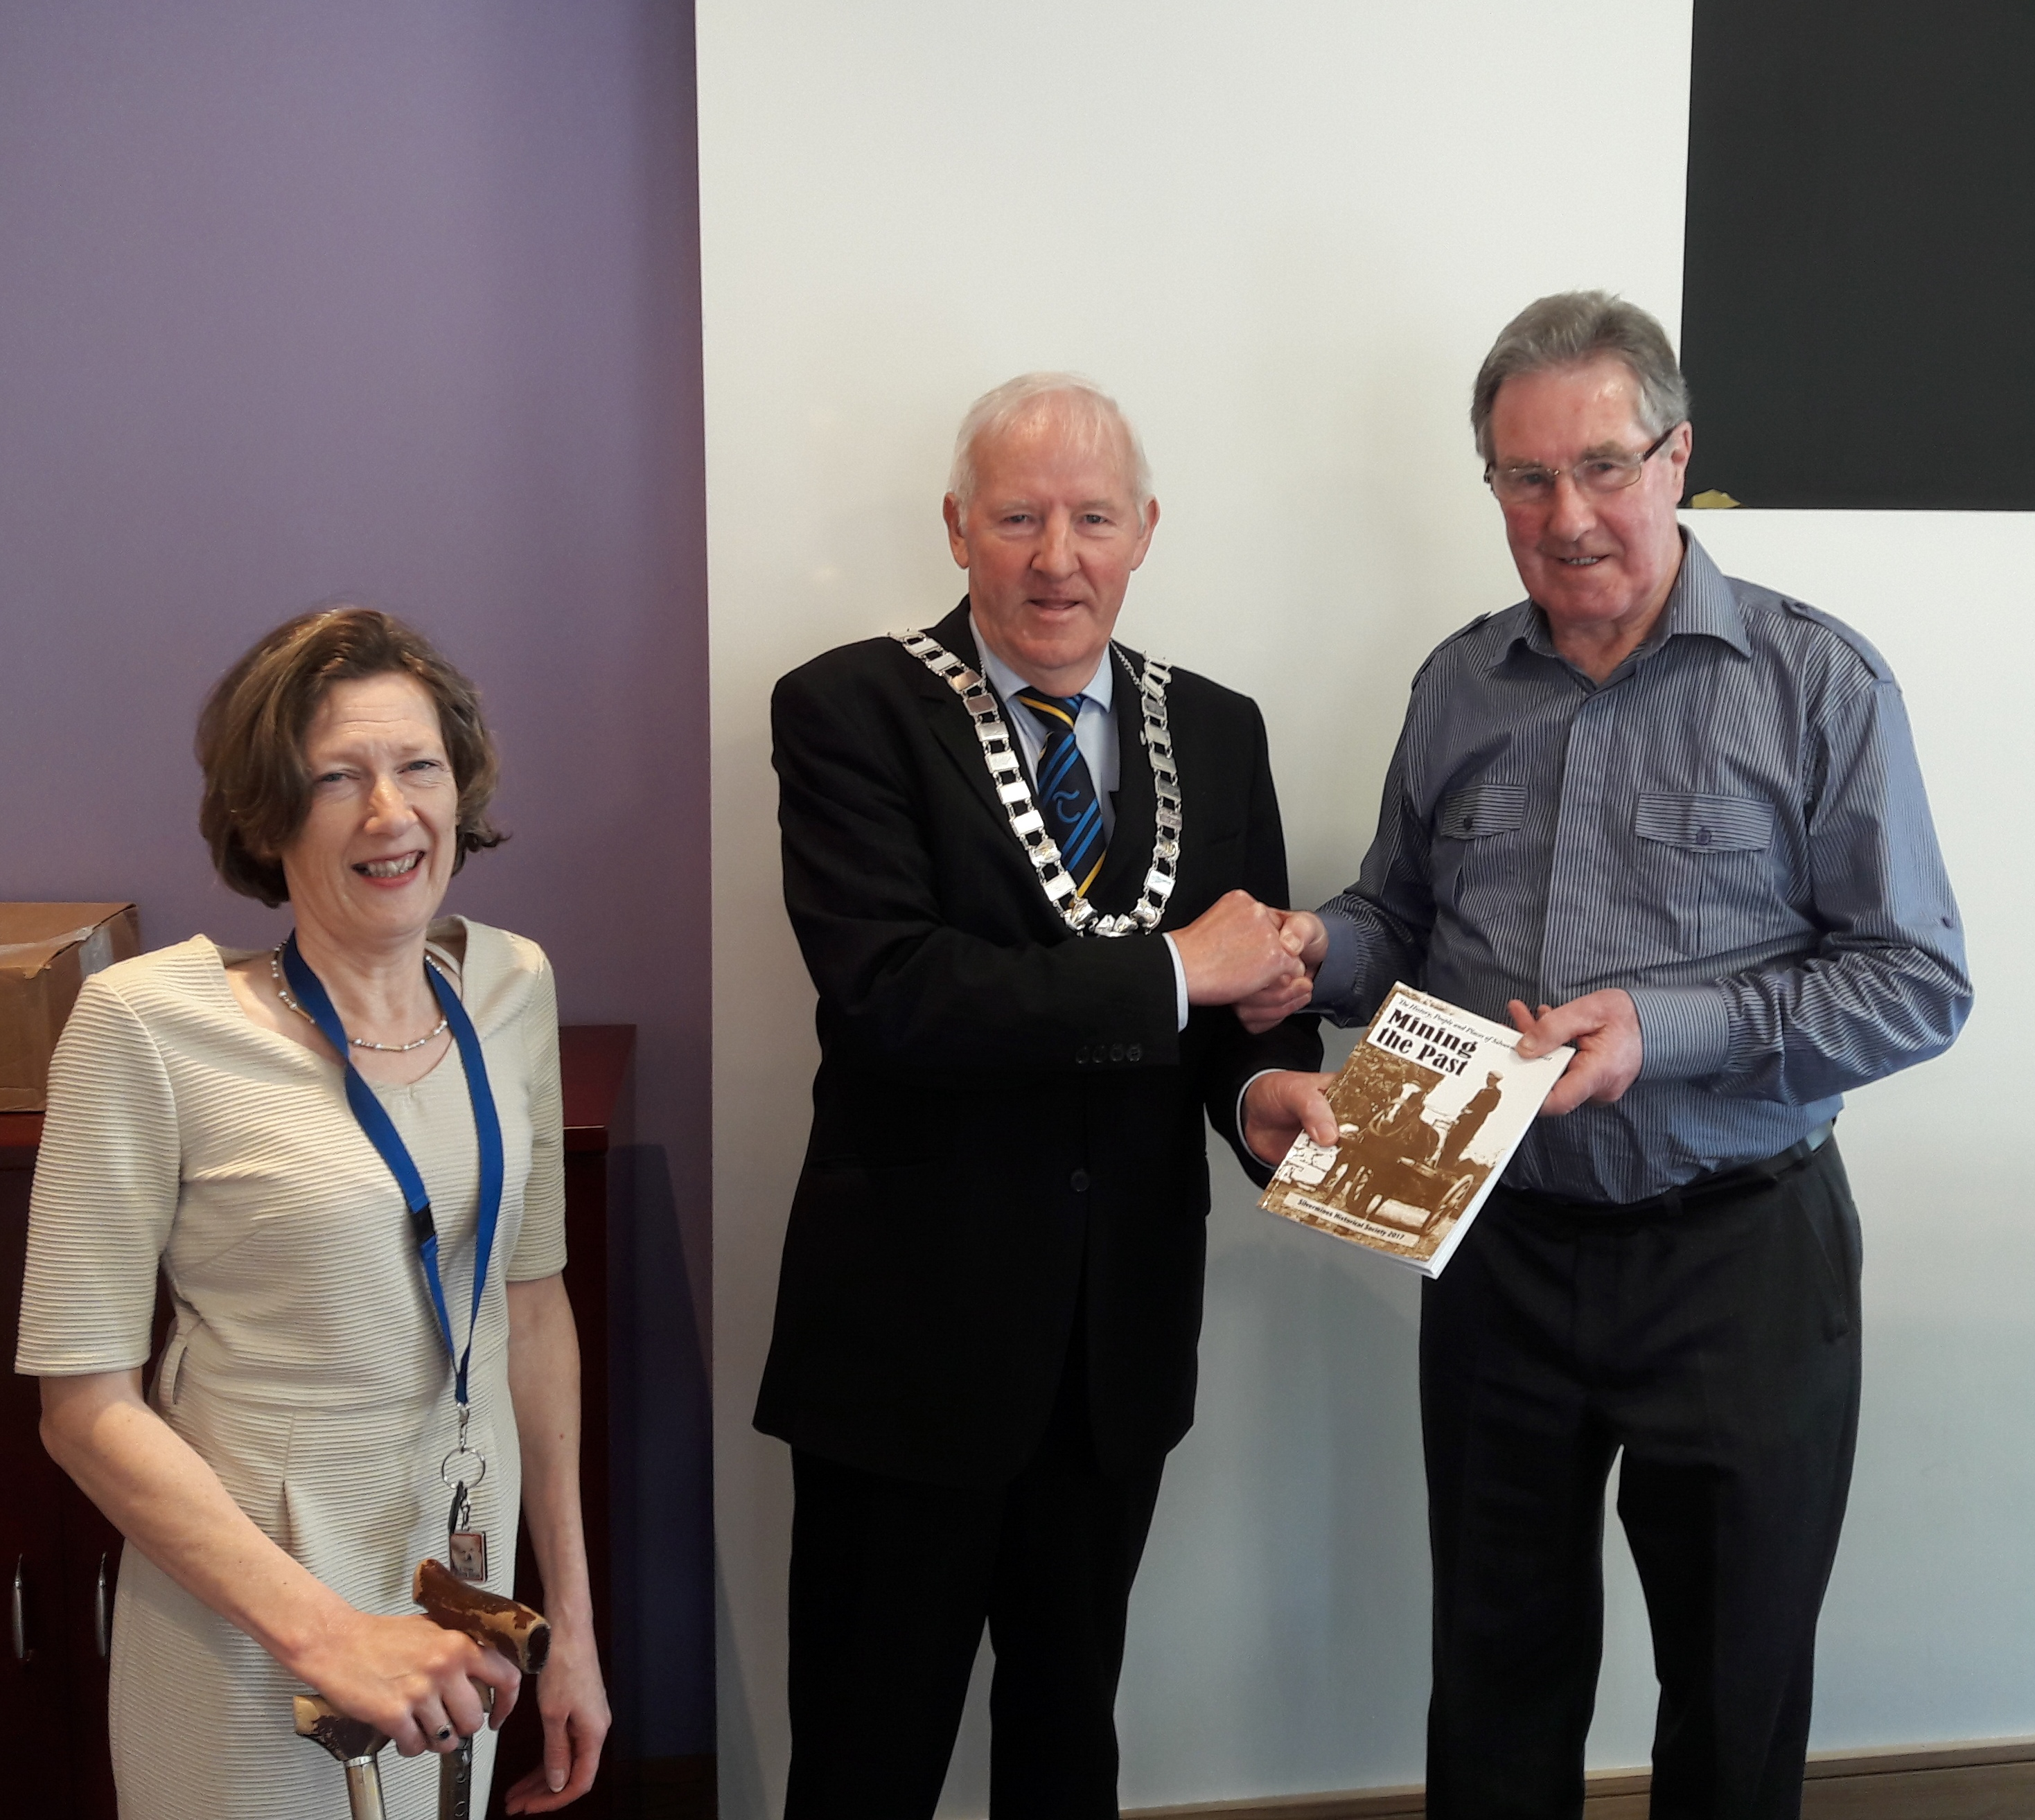 "Silvermines Historical Society's scoop 1st prize in Listowel Writers Week with their local history book ""Mining the Past"", (2017 Edition), and document The Birth of a Group Scheme for generations to come."